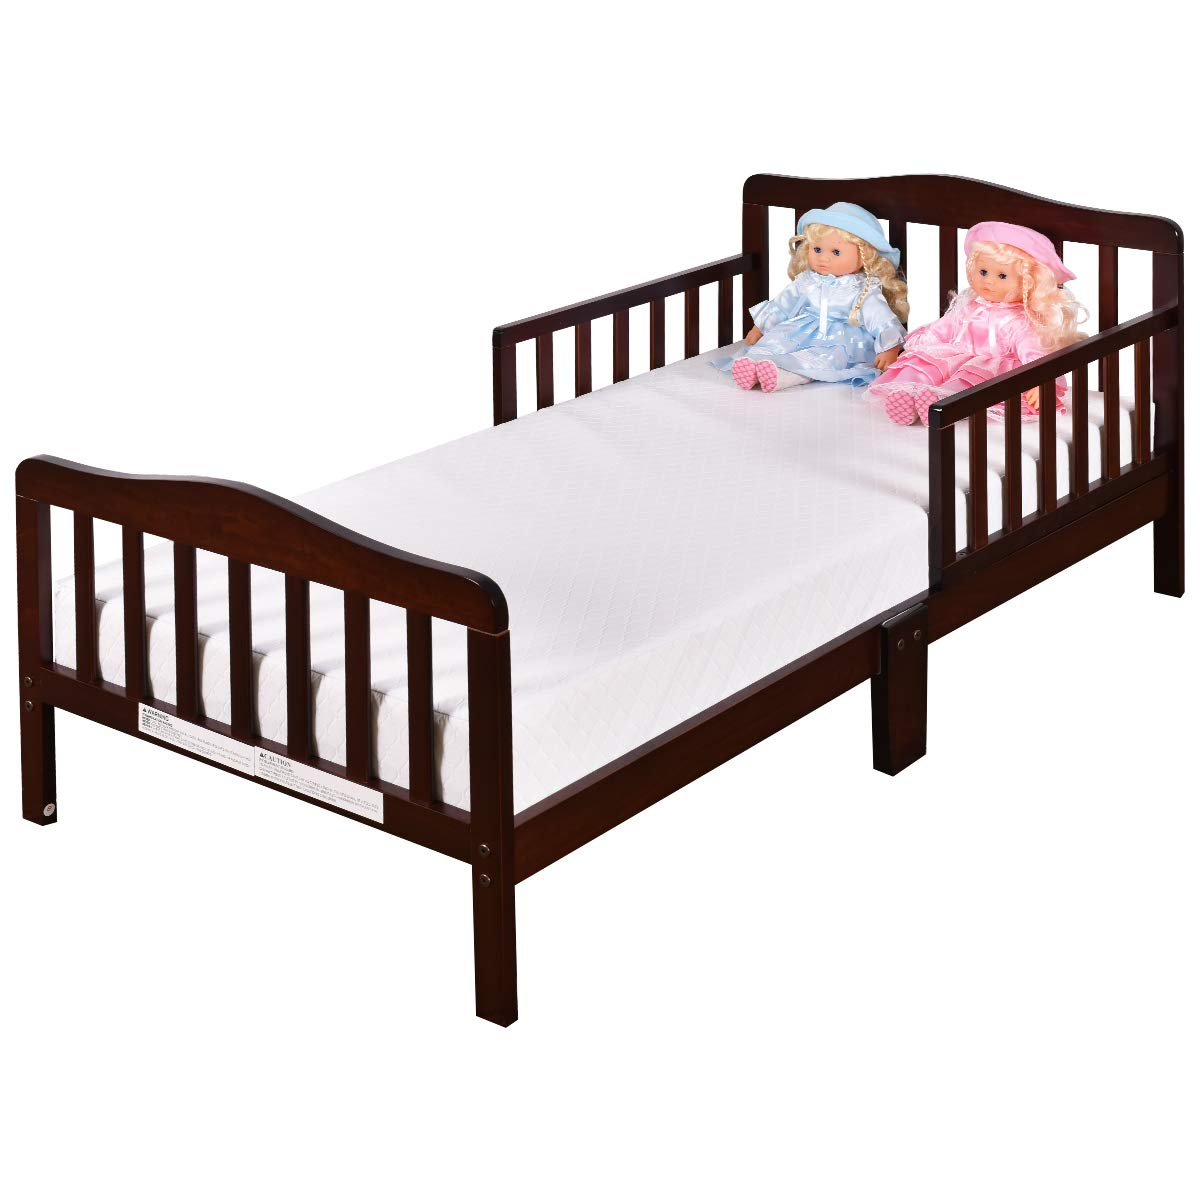 Costzon Toddler Bed, Wood Kids Bedframe Children Classic Sleeping Bedroom Furniture w/Safety Rail Fence (Cherry) by Costzon